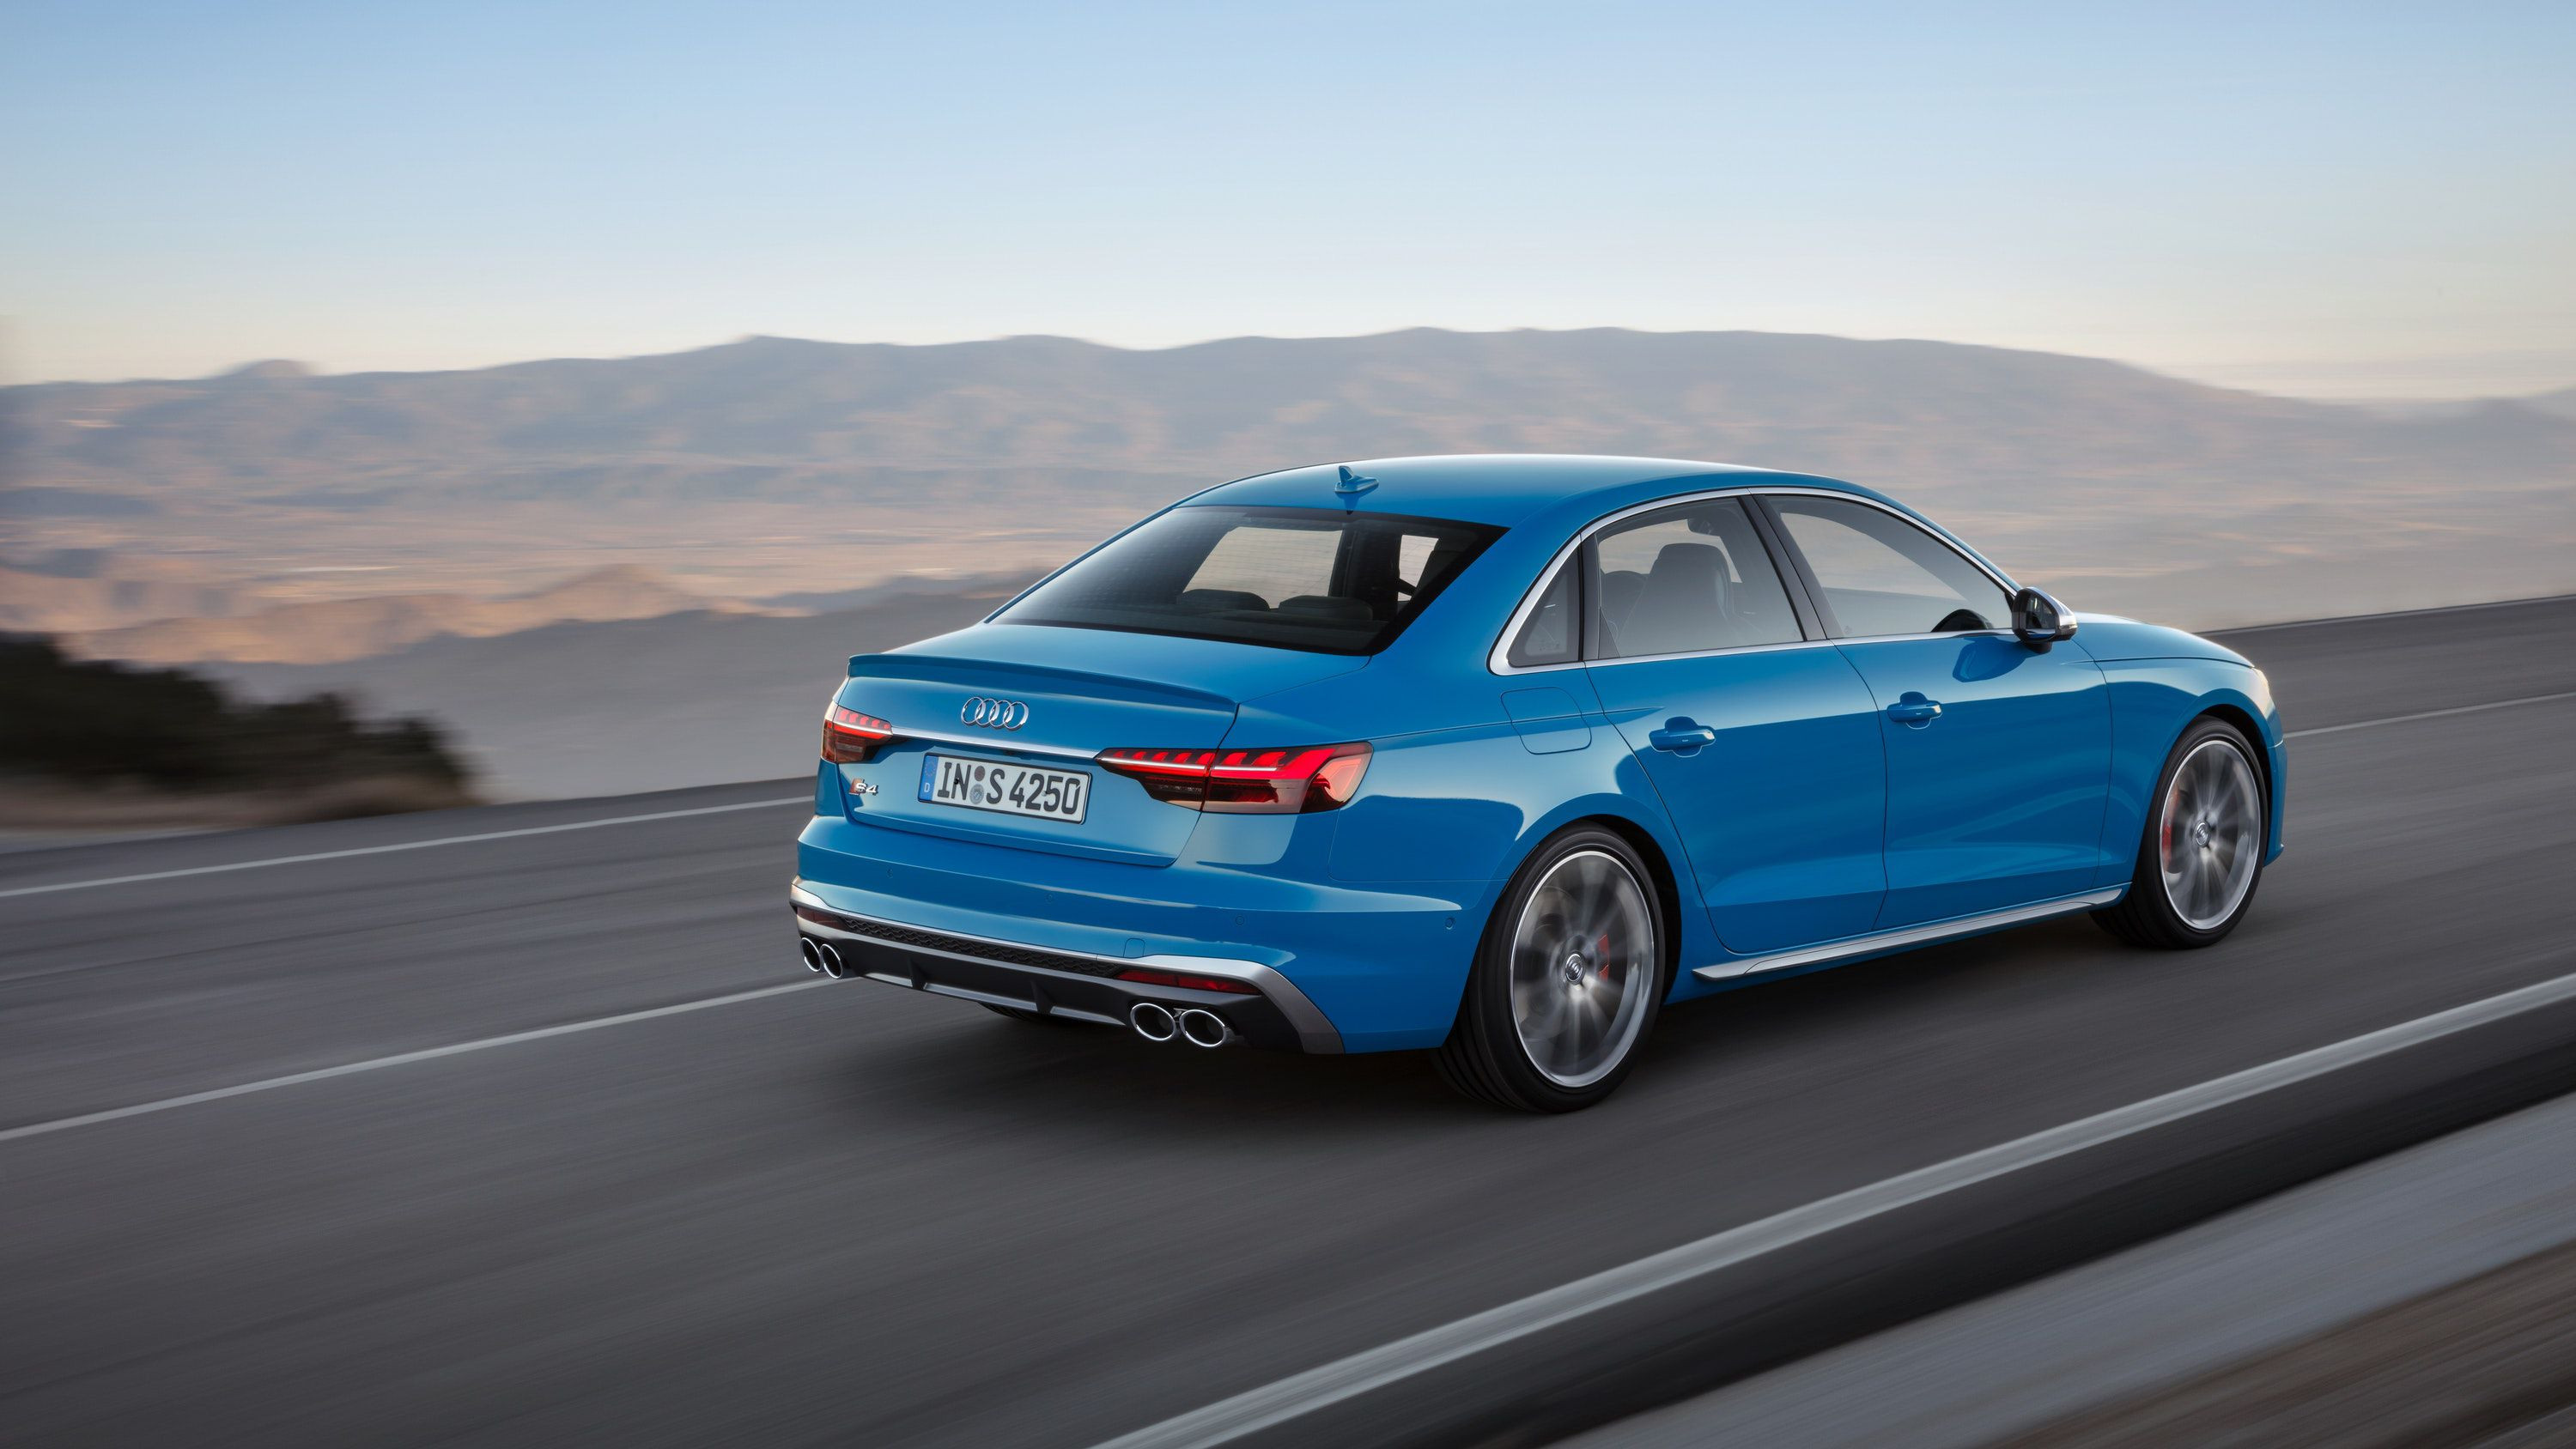 Side view of a blue Audi S4 driving on a road